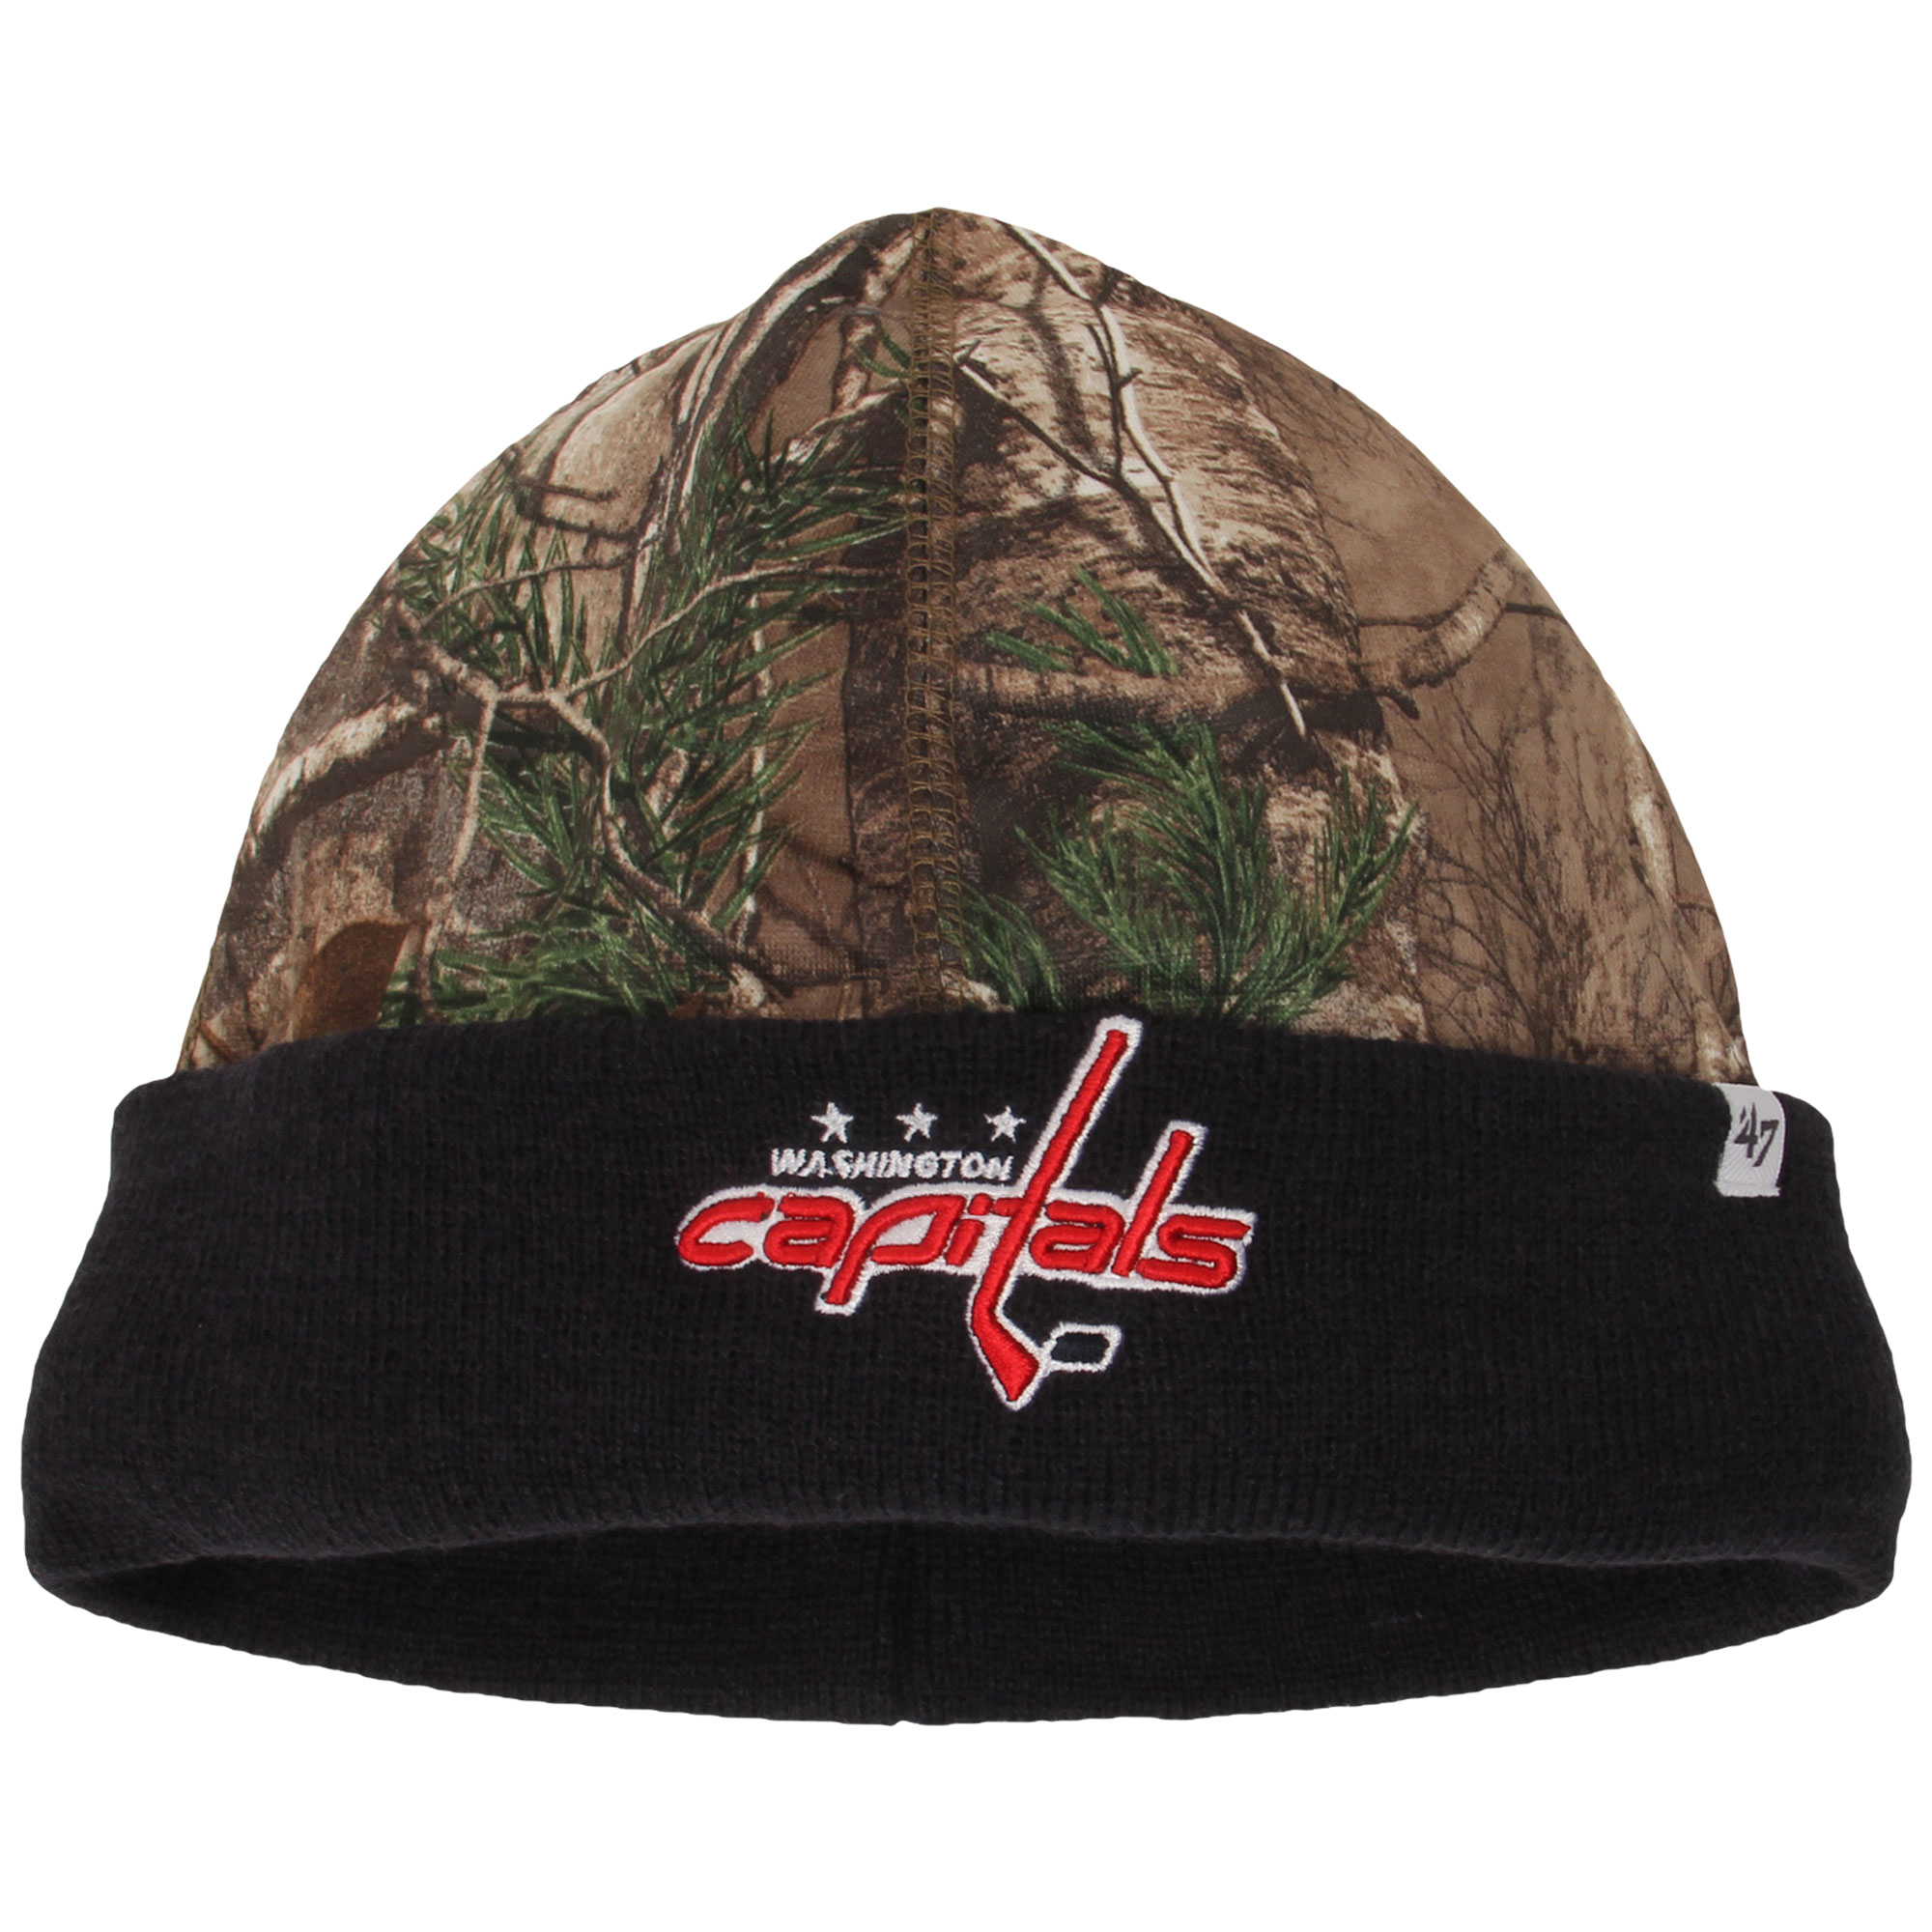 Washington Capitals '47 Real Tree Foxden Cuffed Knit Hat - Camo/Navy - OSFA